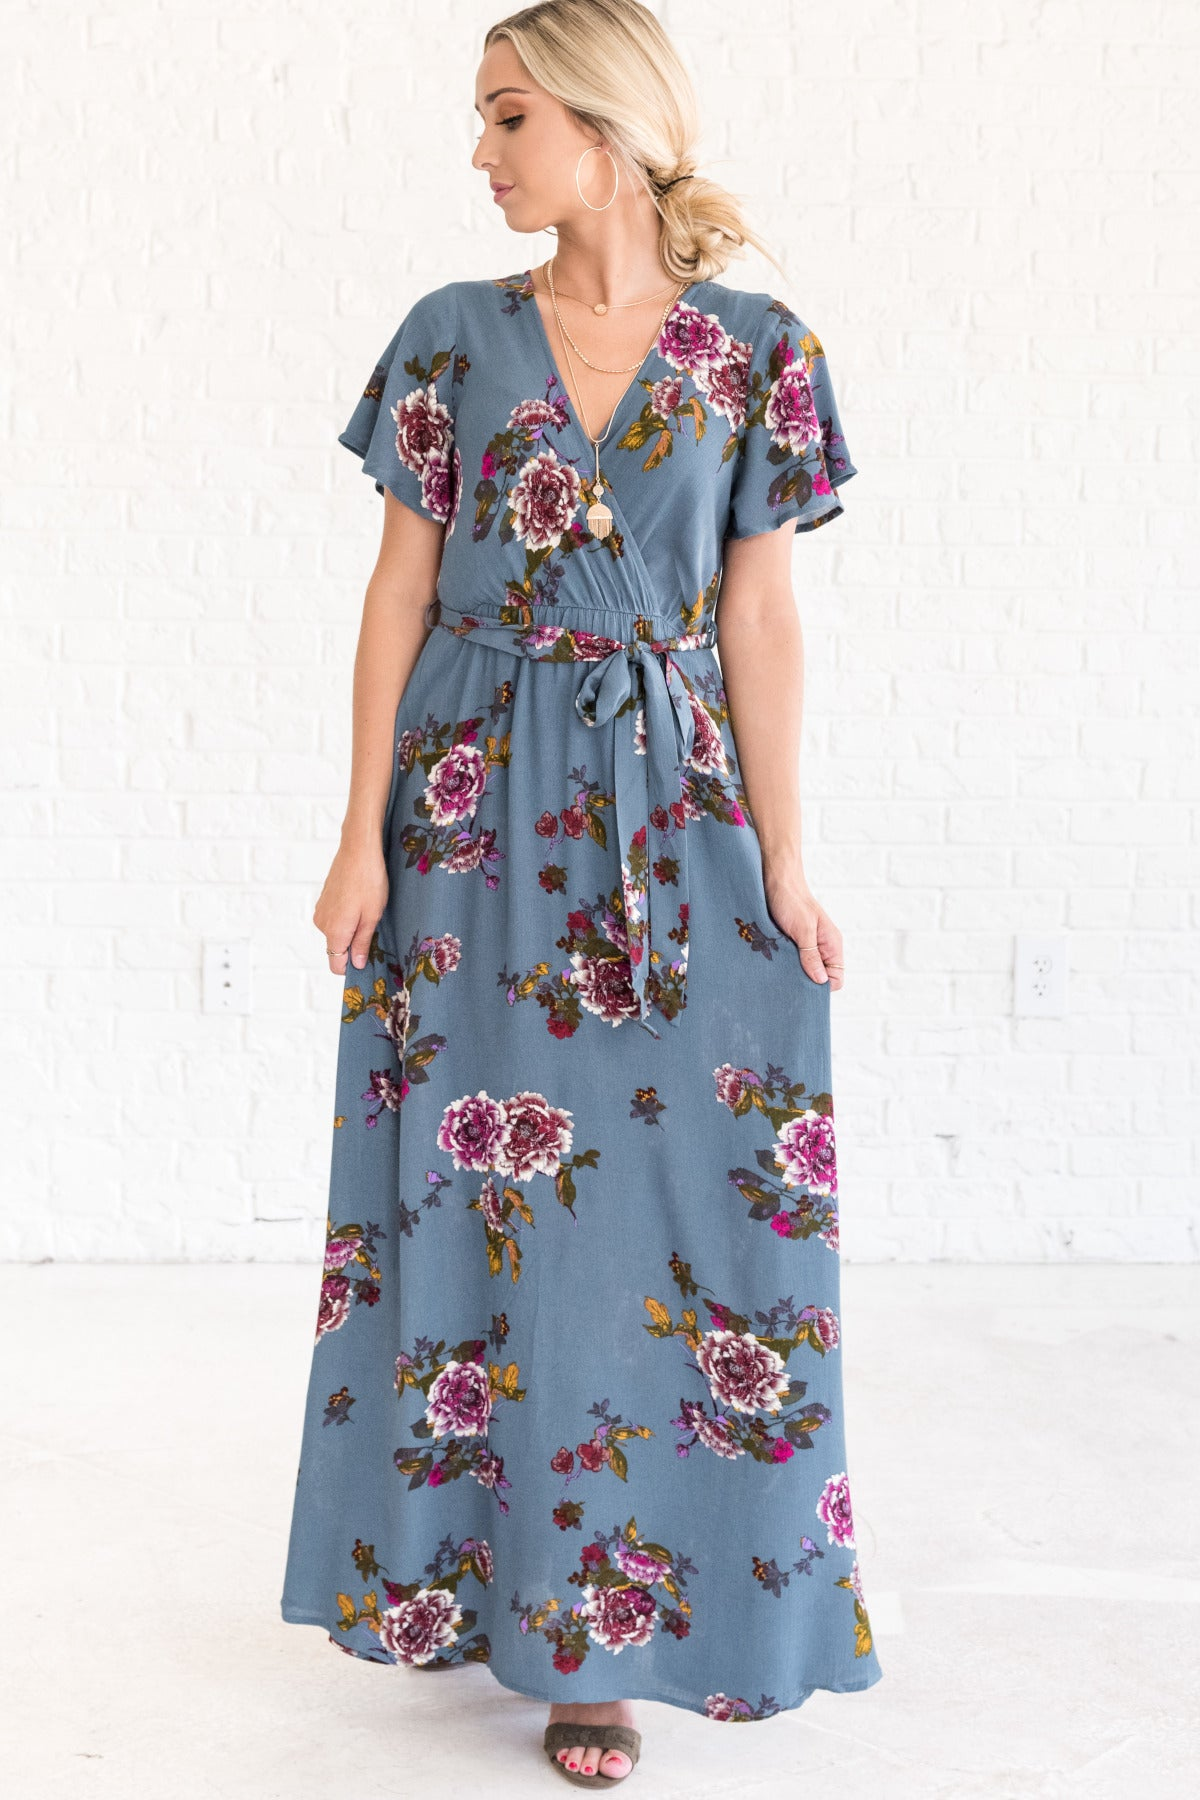 Cyan Blue Boutique Floral Maxi Dresses for Women